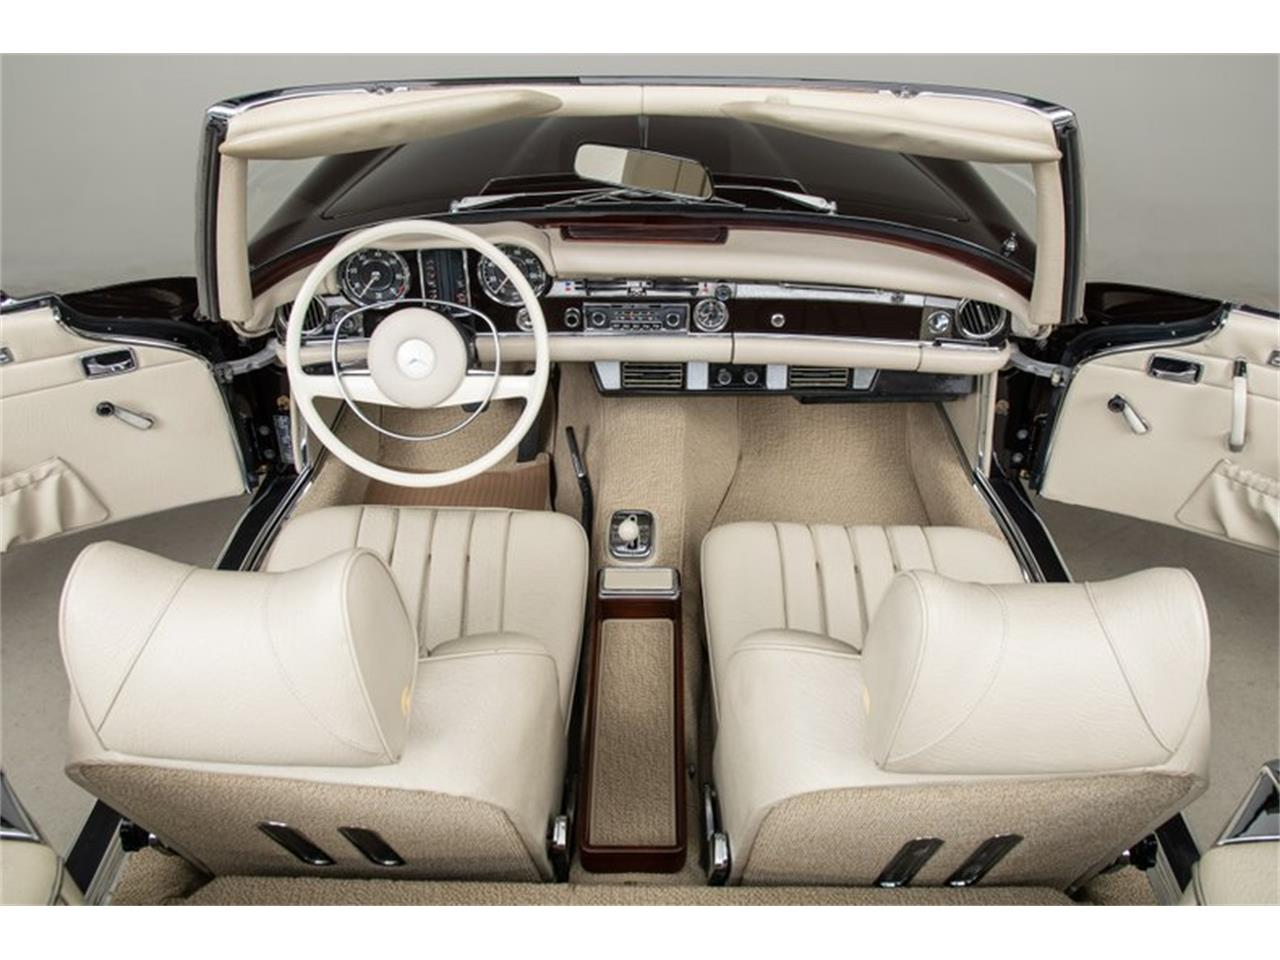 Large Picture of '69 Mercedes-Benz 280SL located in Scotts Valley California Auction Vehicle Offered by Canepa - QALE